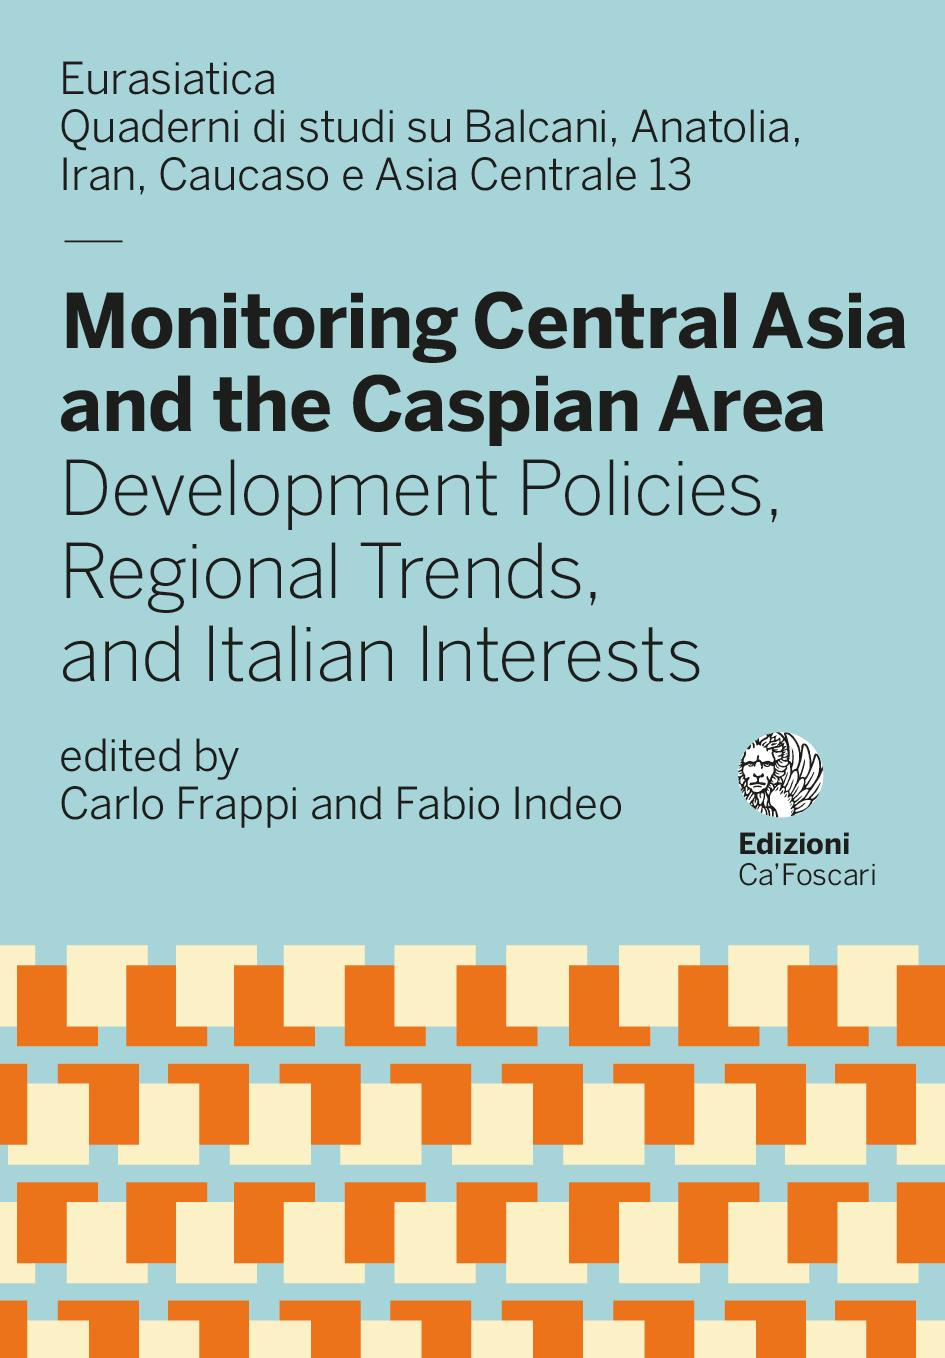 Monitoring Central Asia and the Caspian Area